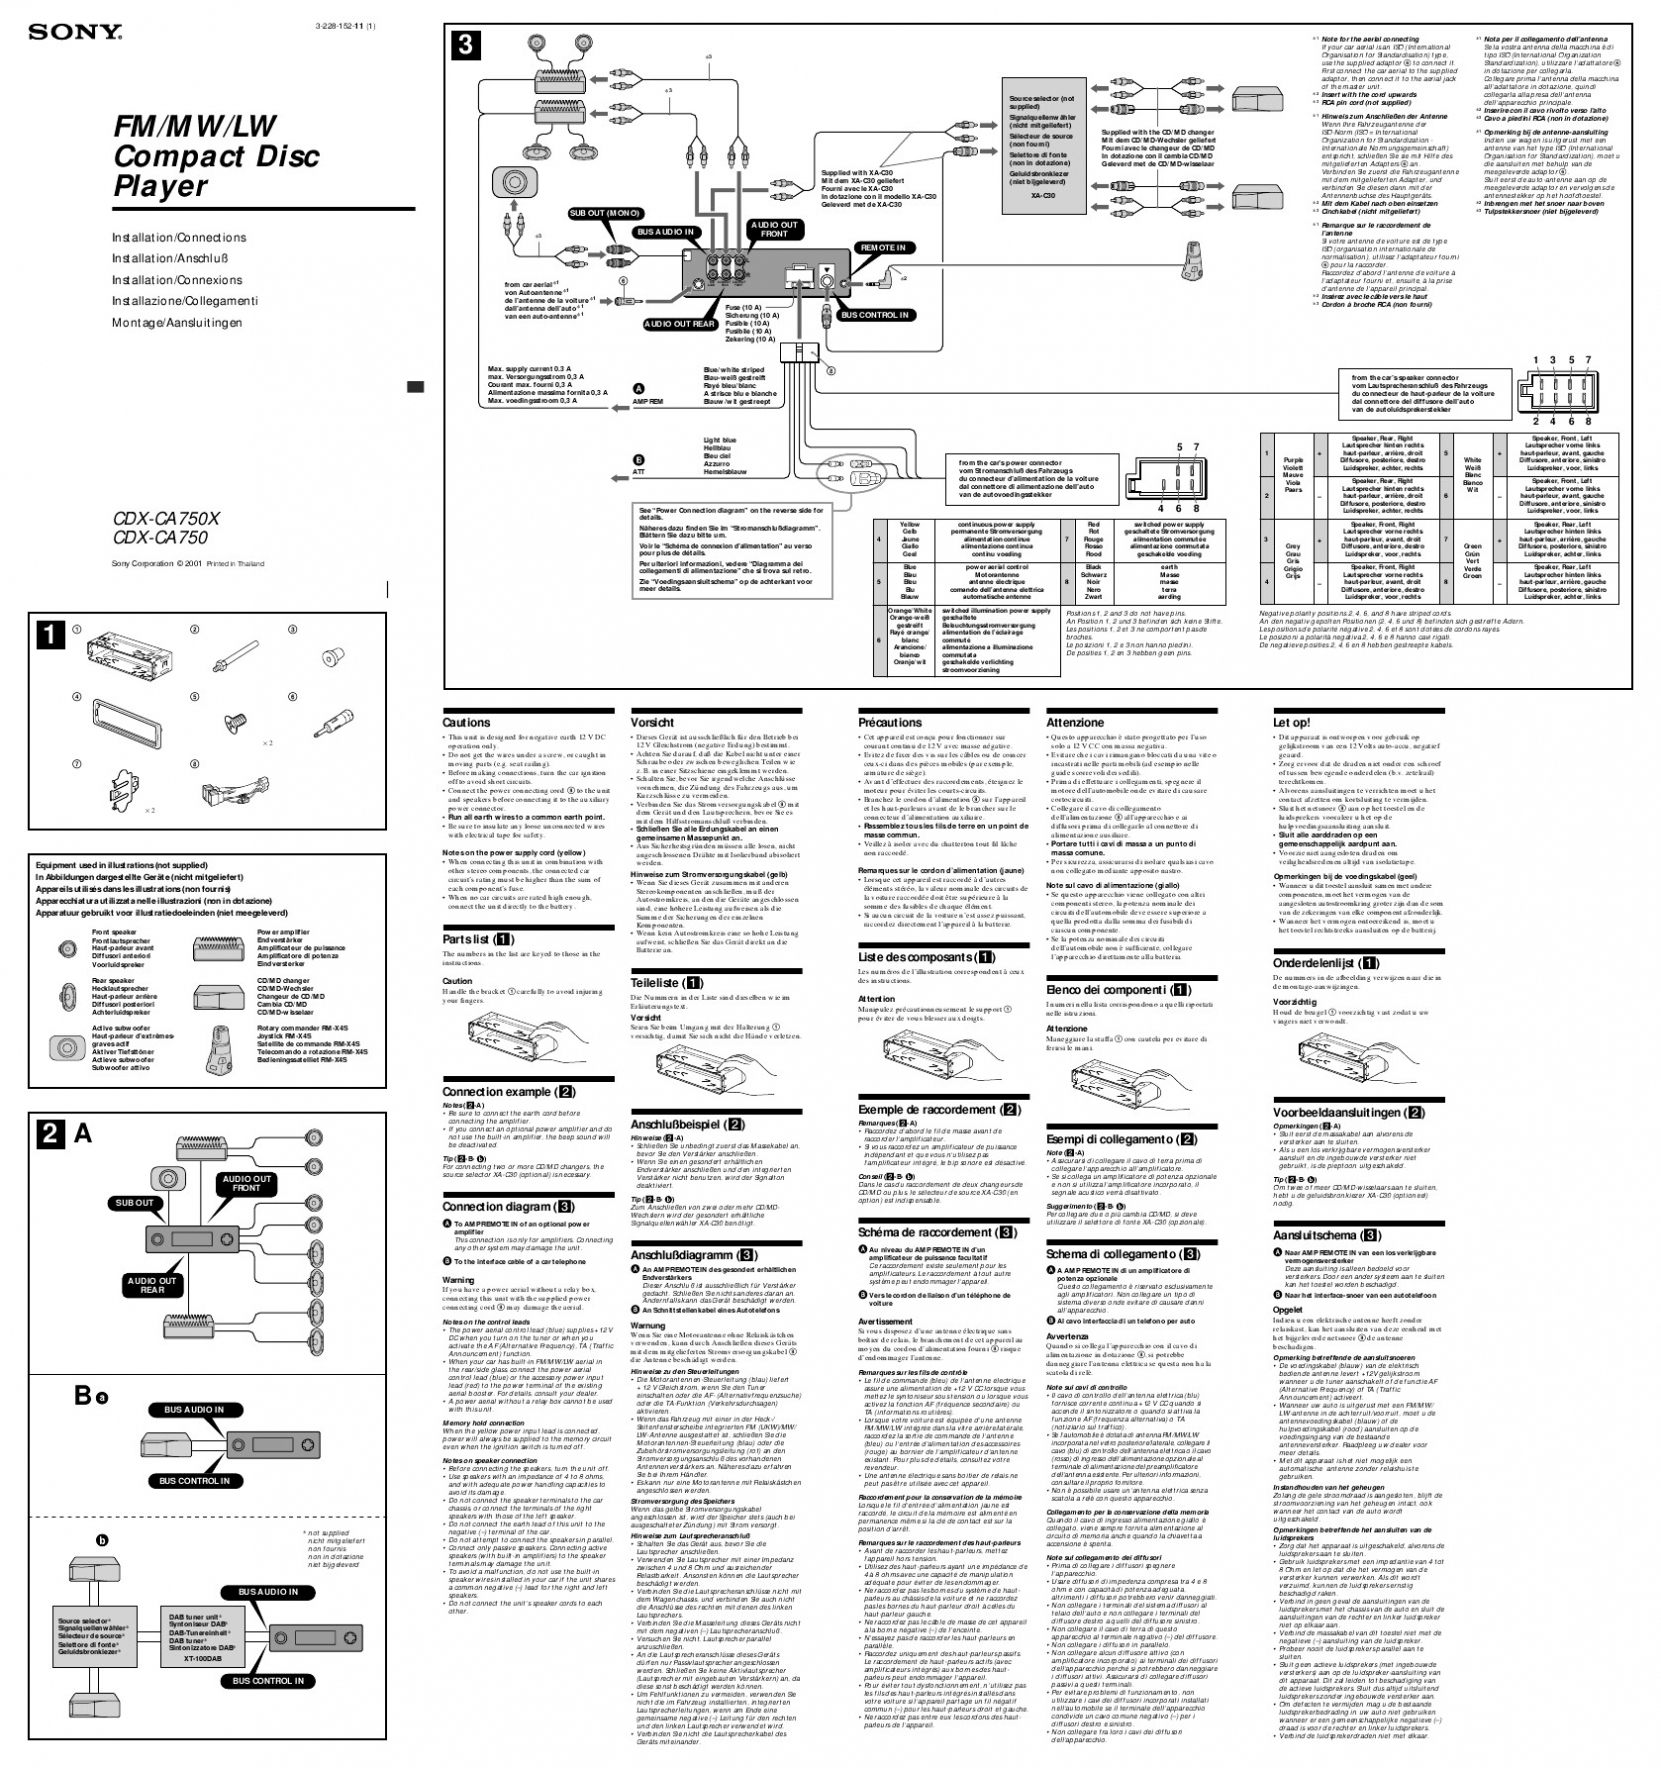 Sony Xplod Cd Player Wiring Diagram from 2020cadillac.com